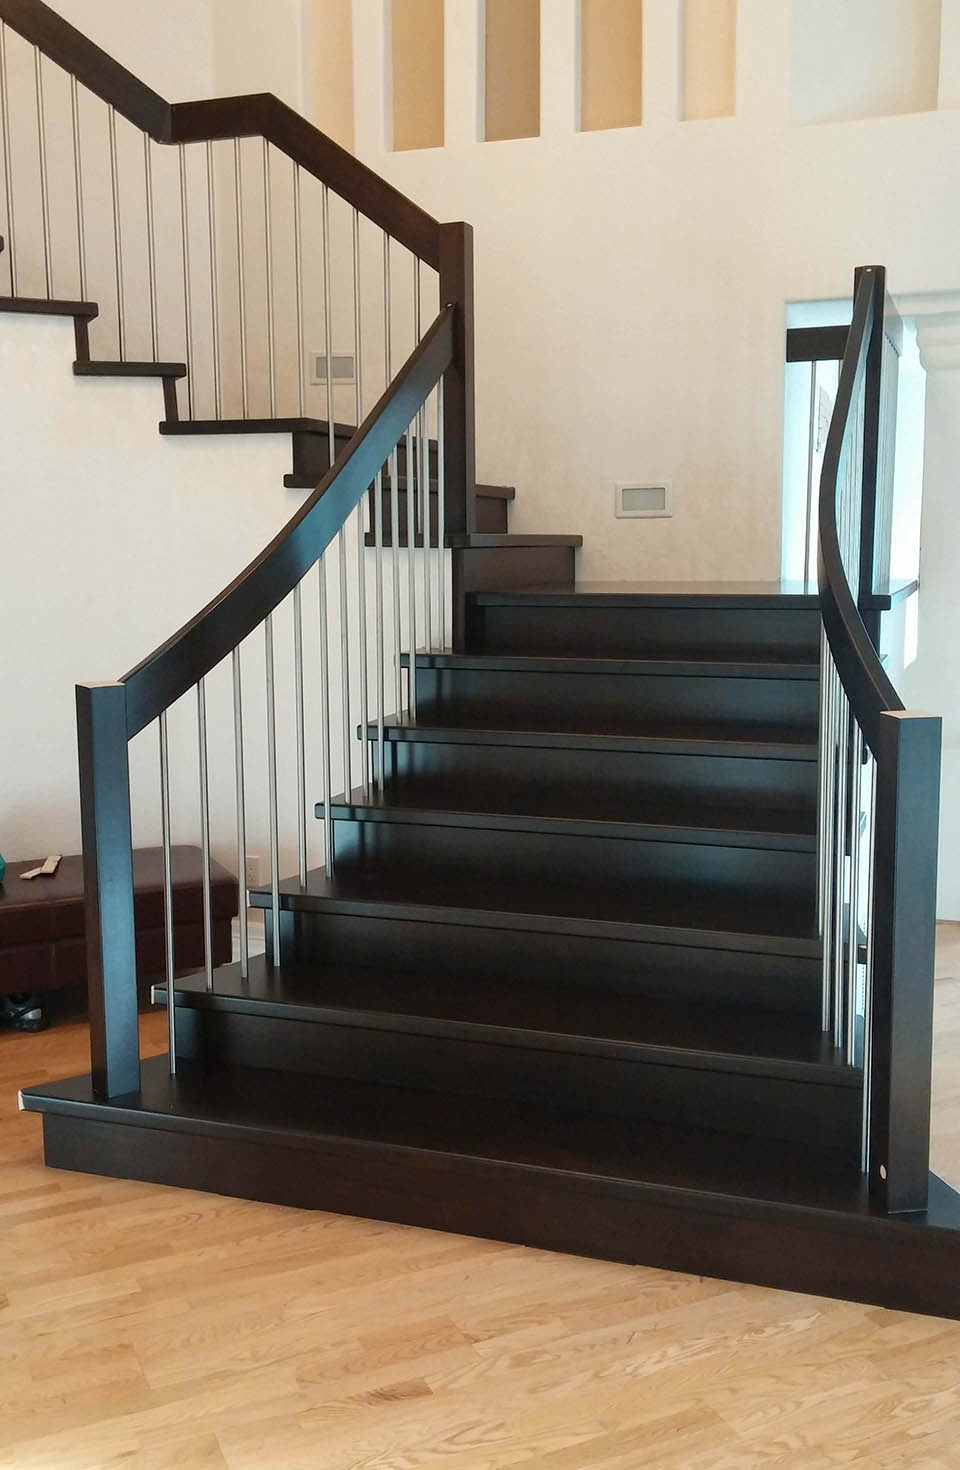 Ordinaire 1706 U2013 Modern Iron Balusters. 1103